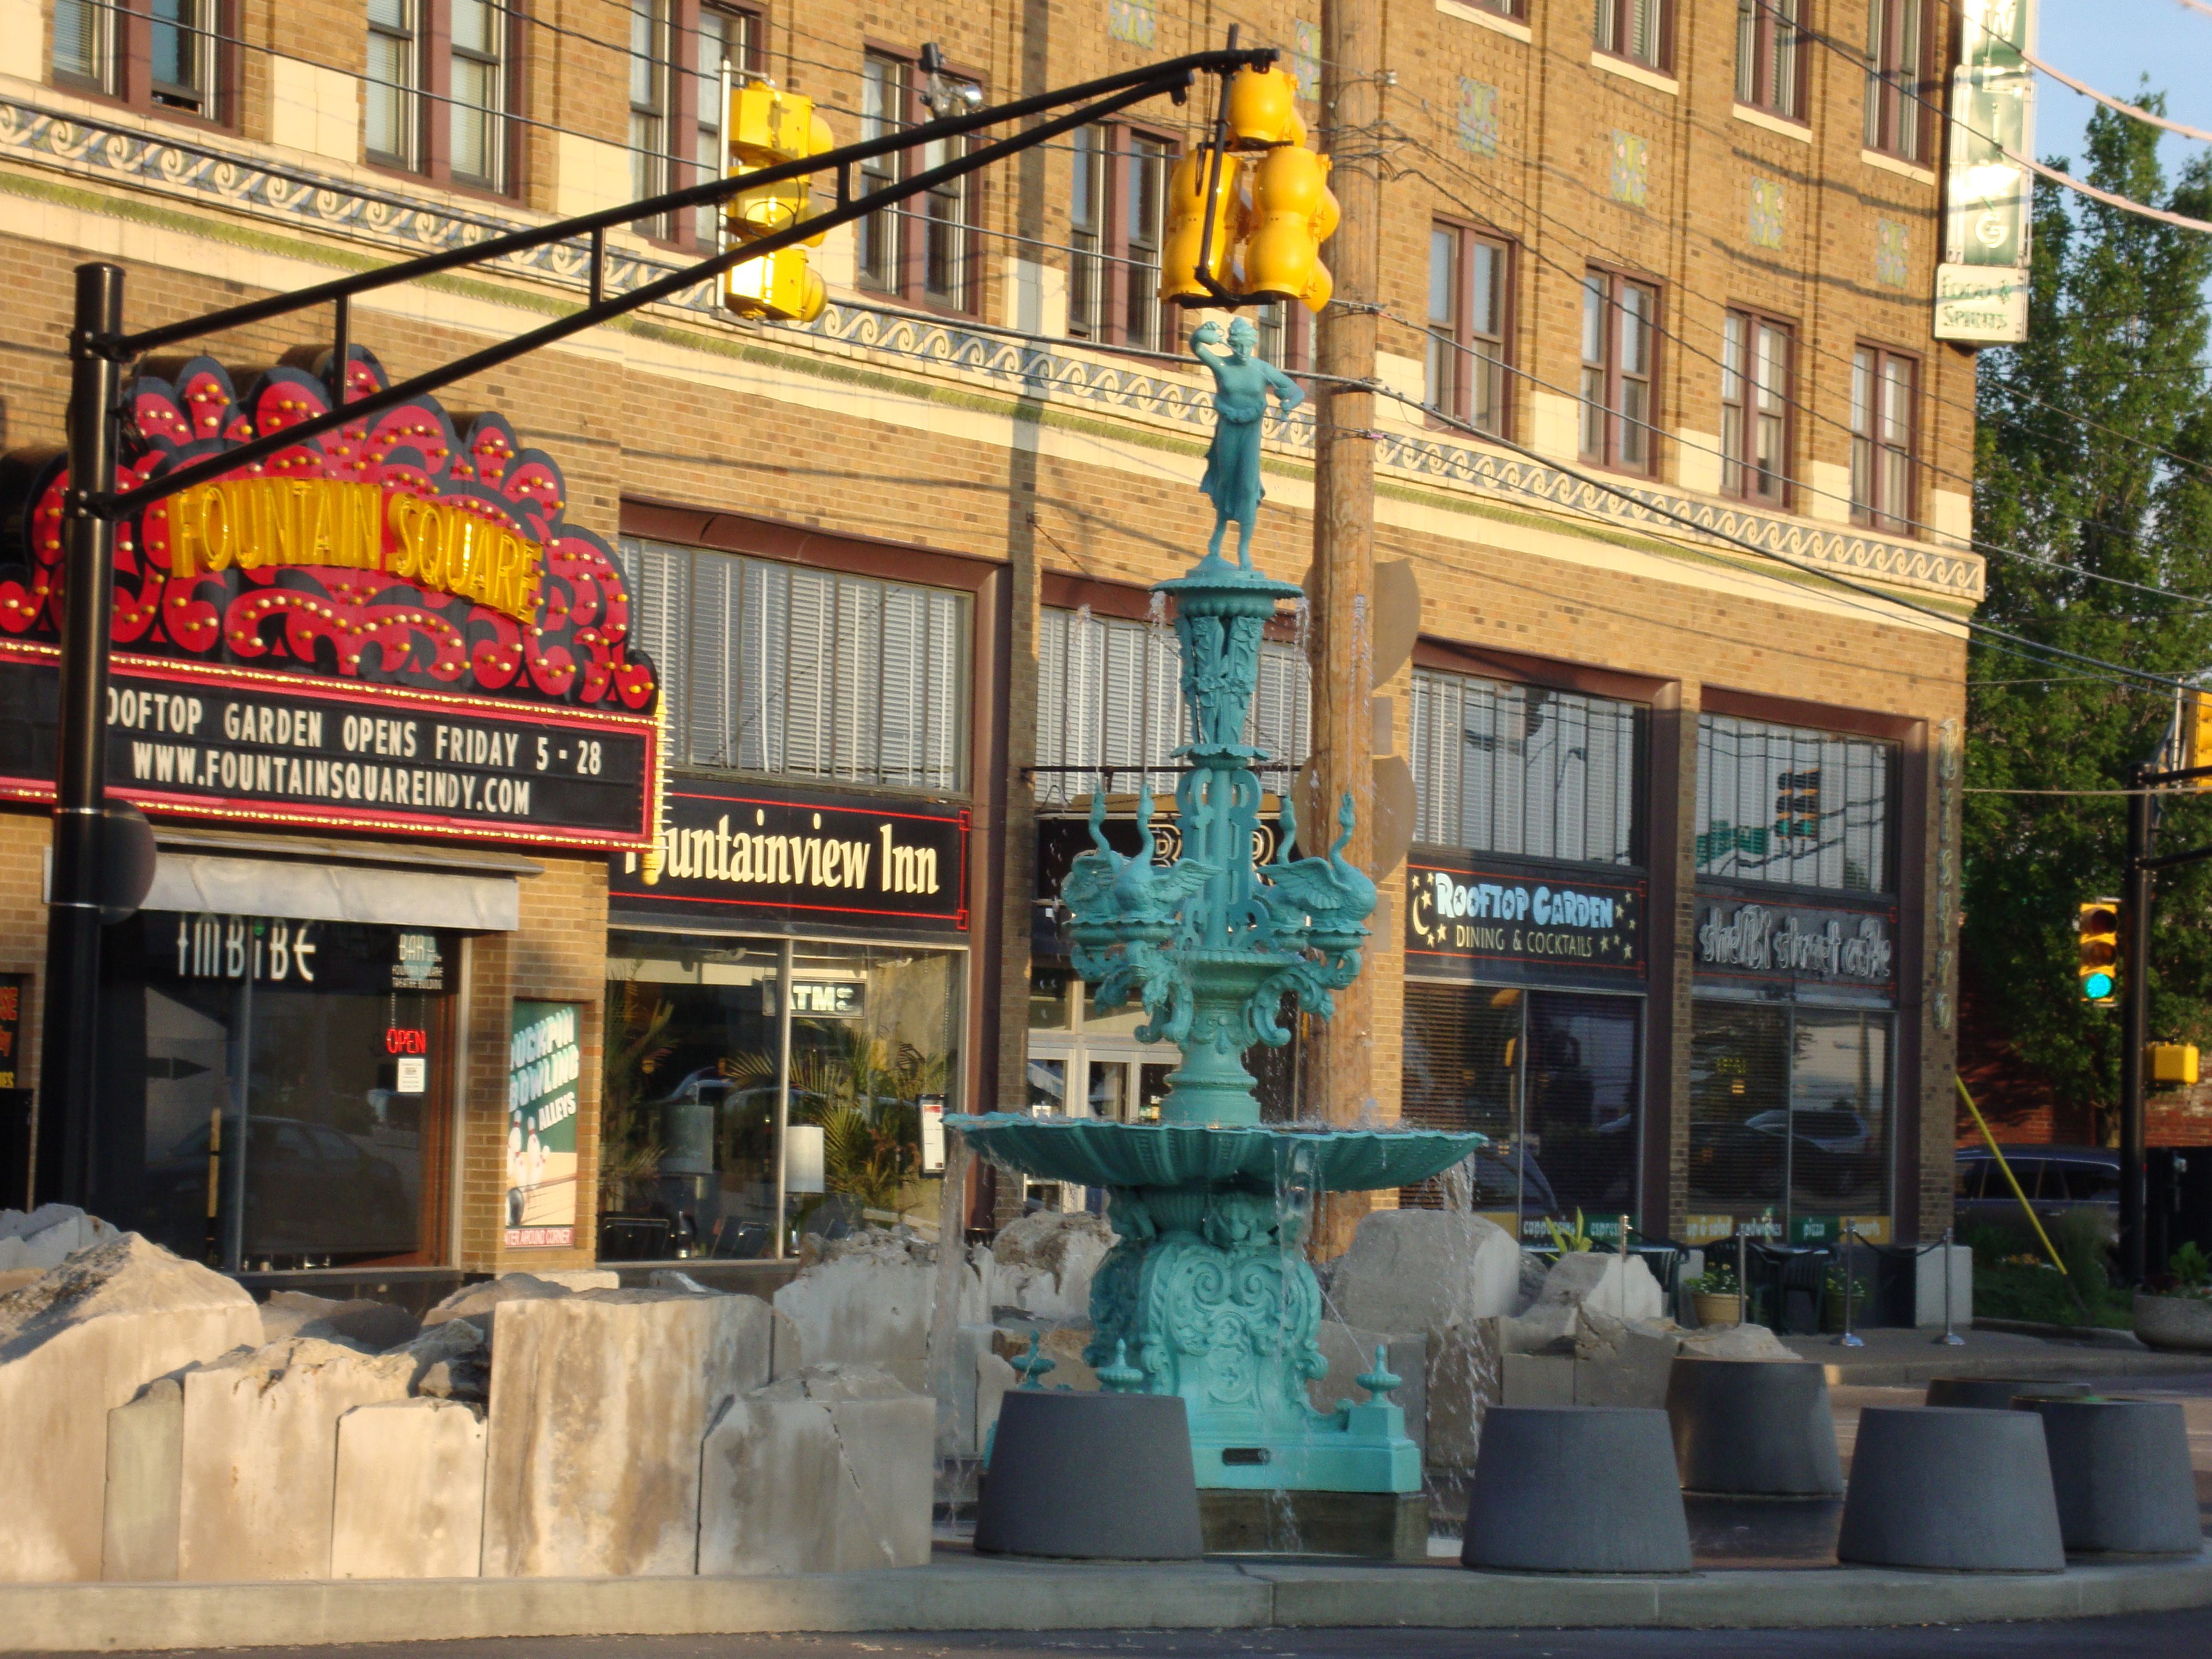 Fountain Square An Amazing Neighborhood Full Of S Restaurants And